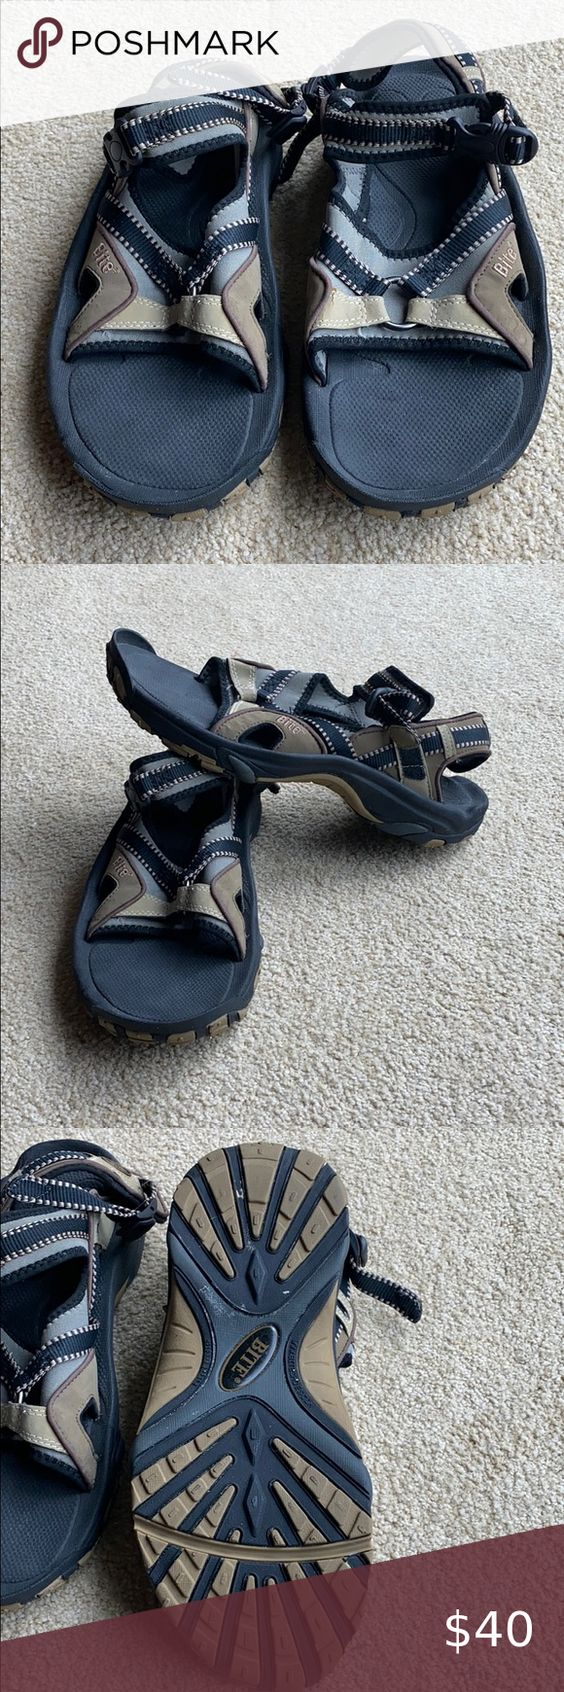 20+ Bite golf shoes out of business info